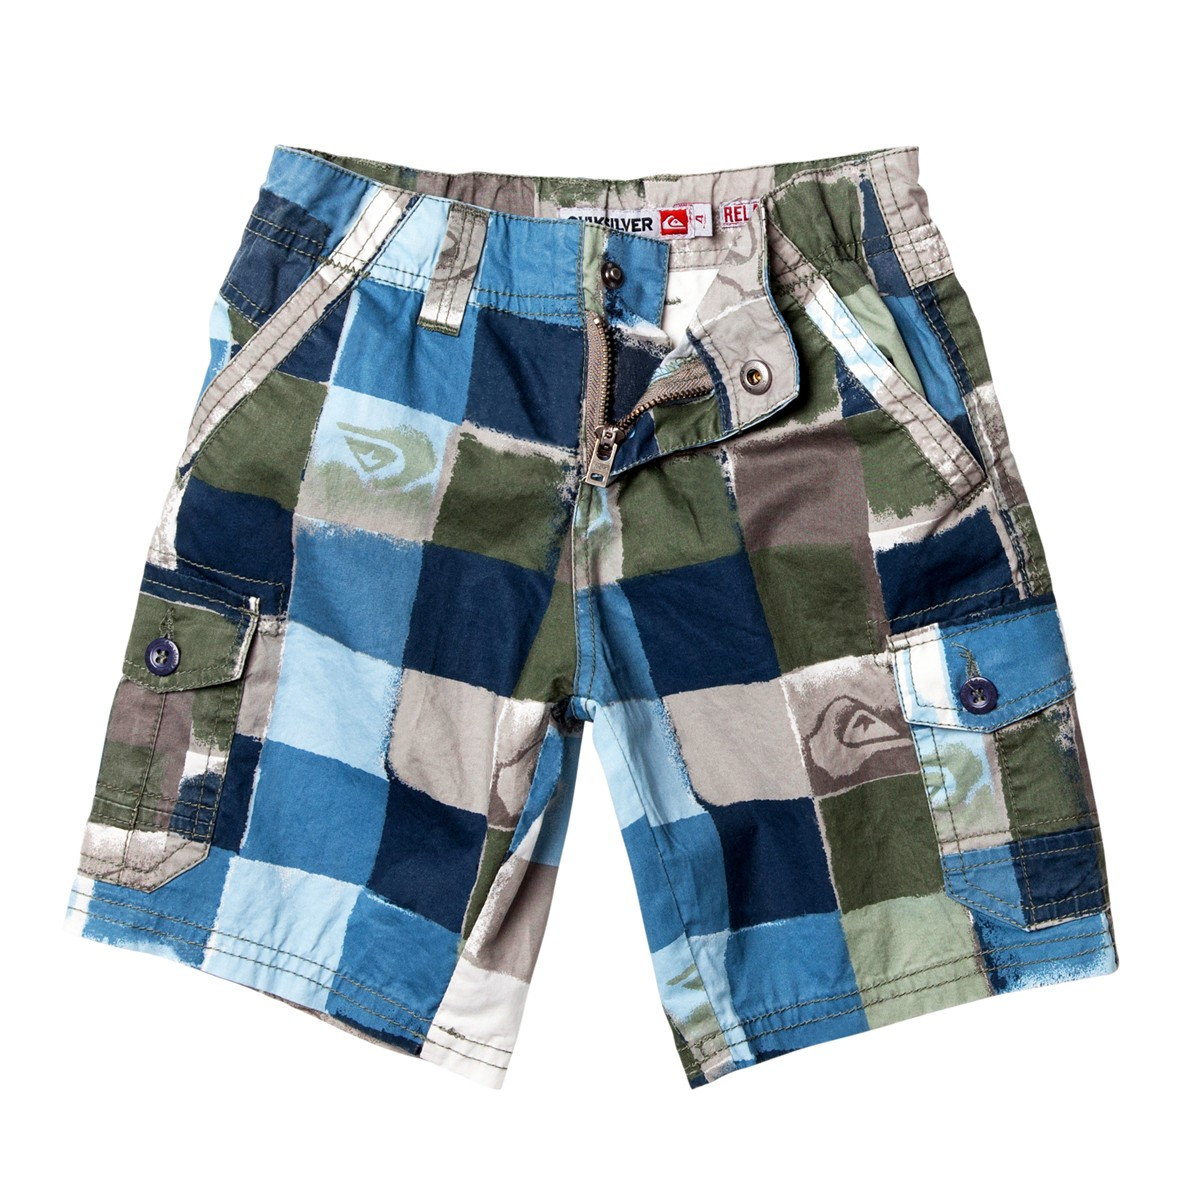 Shorts For Boys Fashionate Trends